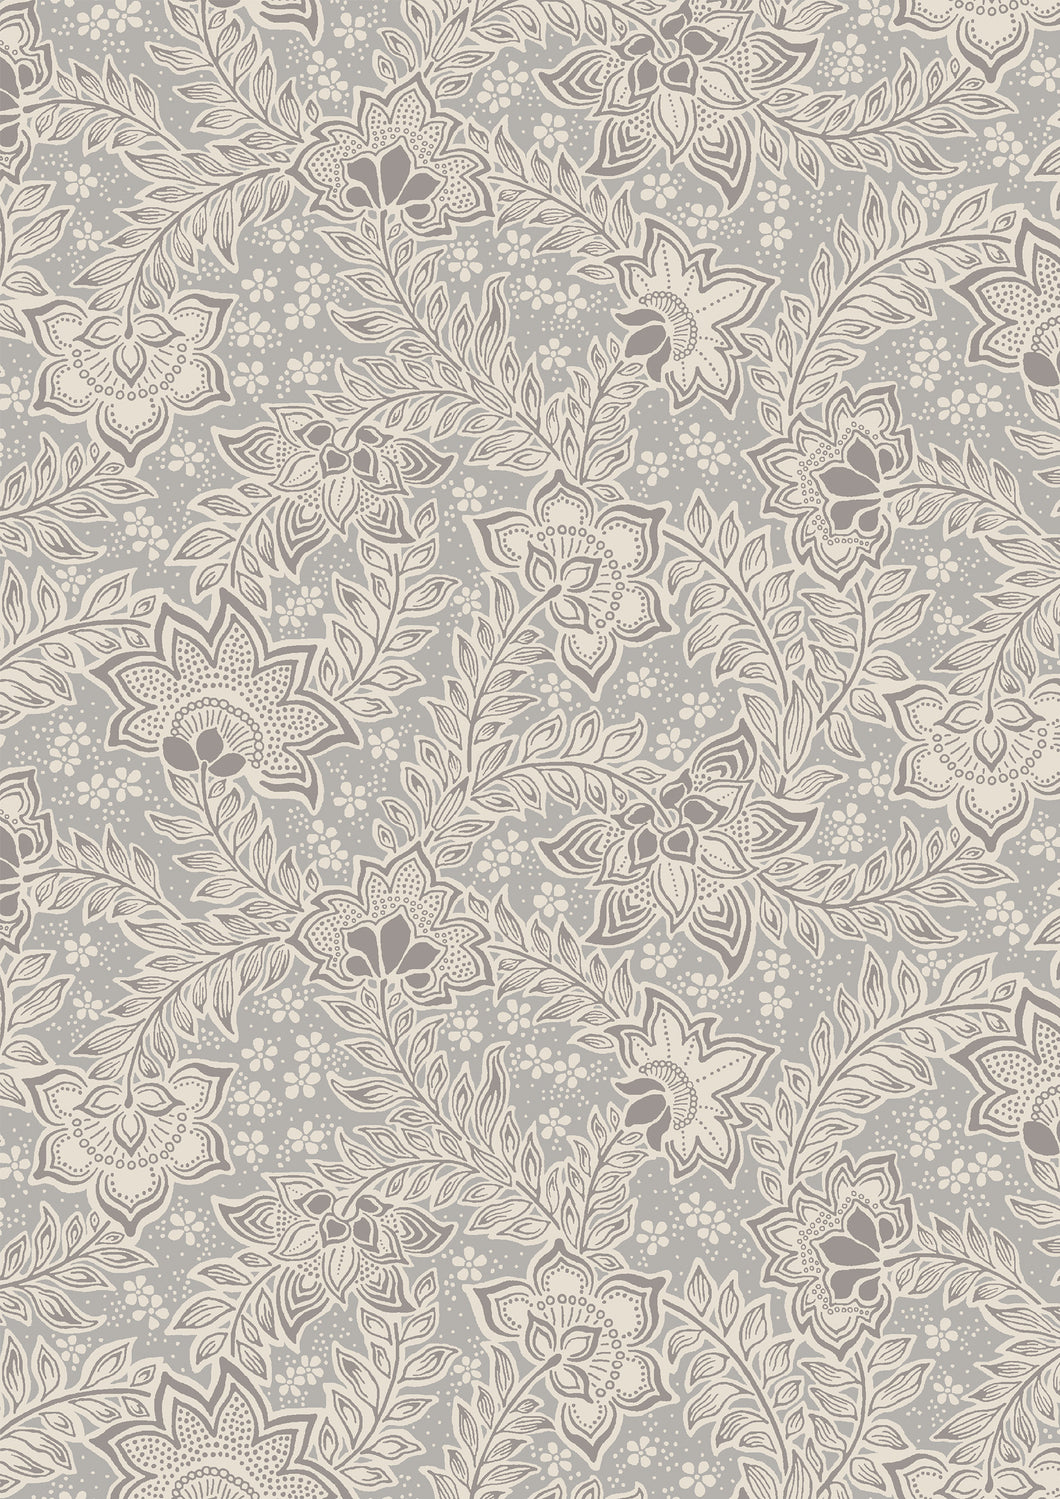 Liberty Of London Fabrics | The Winterbourne Collection | Louisa May